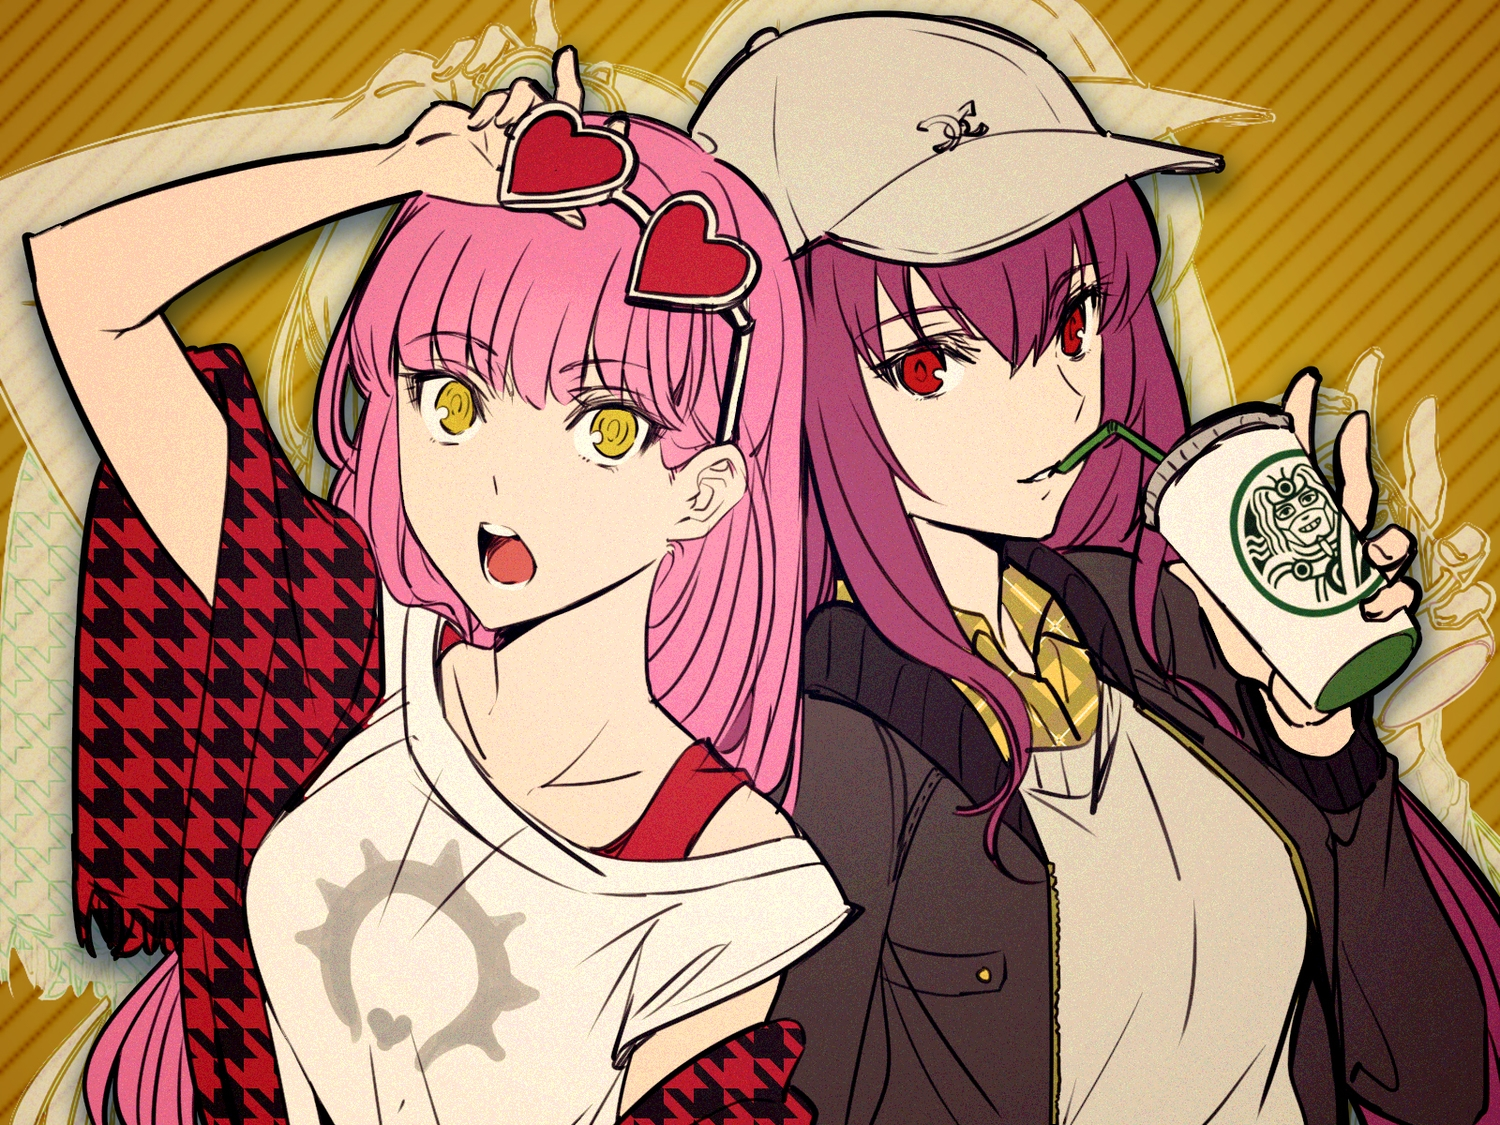 2girls drink fate/grand_order fate_(series) glasses hat long_hair medb_(fate/grand_order) pink_hair purple_hair red_eyes scathach_(fate/grand_order) shimo_(s_kaminaka) yellow_eyes